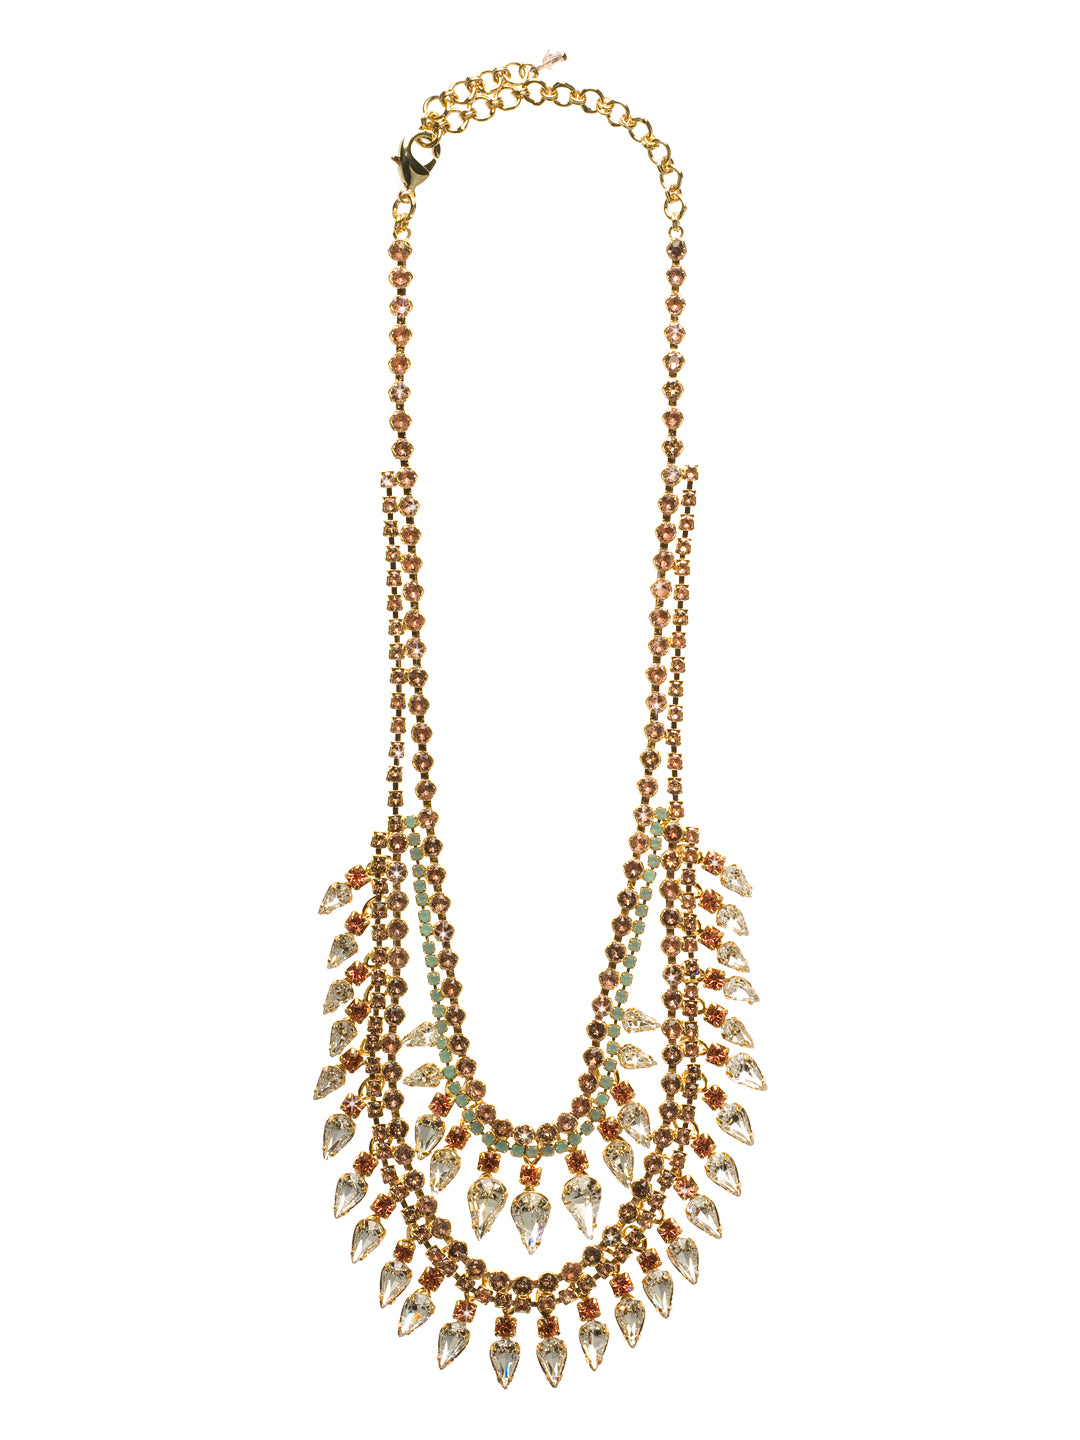 Twin Layered Statement Necklace - NCU21BGCOR